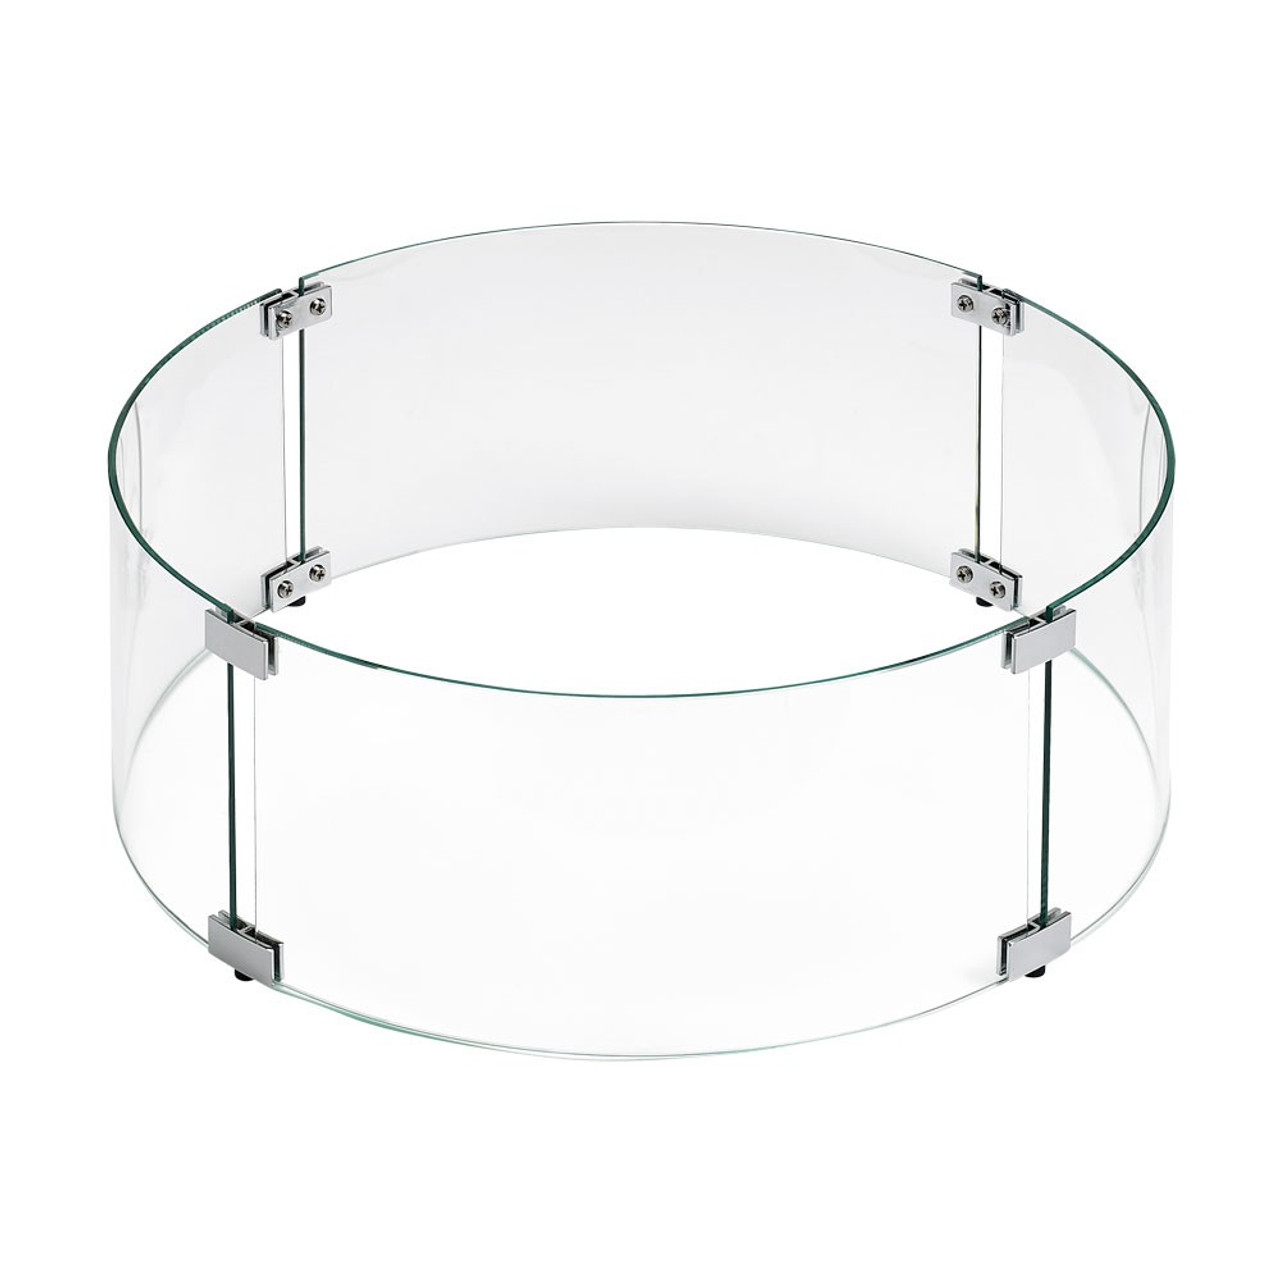 Round Glass Flame Guard for Drop-In Fire Pit Pan - Round Glass Flame Guard For Drop-In Fire Pit Pan - Flame Guards